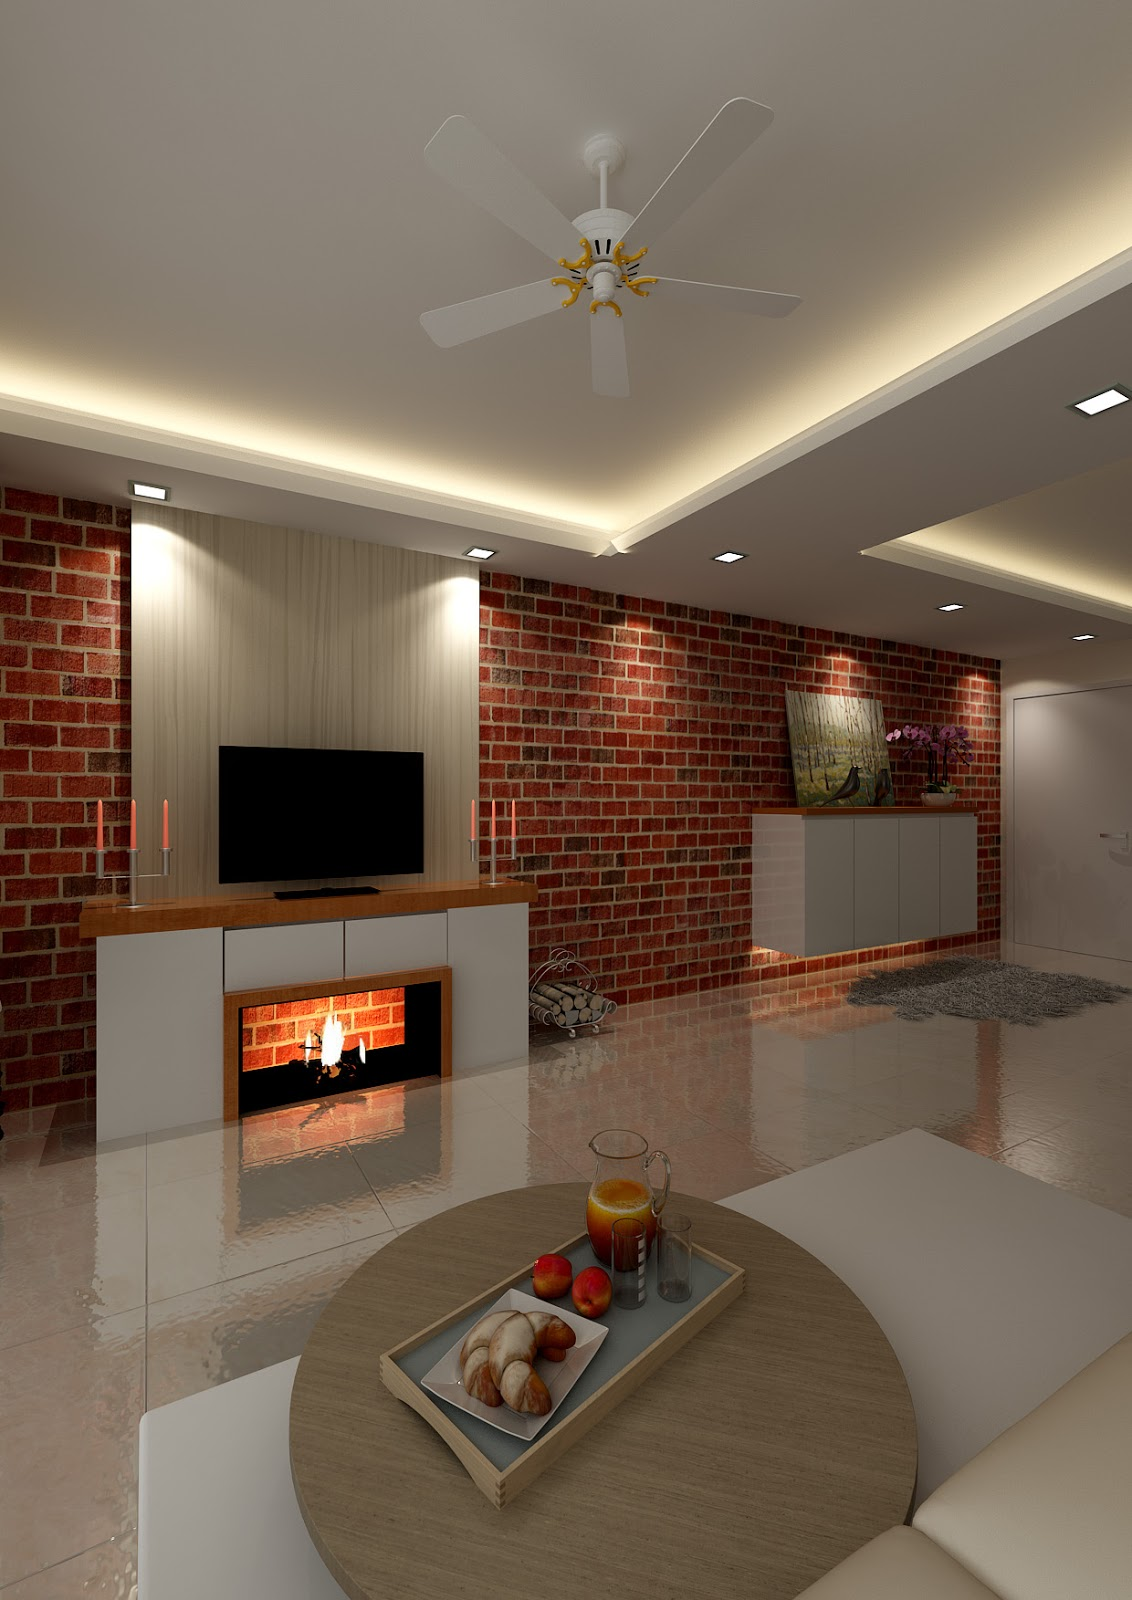 Renovation Ideas For 4a Hdb Living Room: IMBUED With LOVE: Contractor Or Interior Designer For HDB